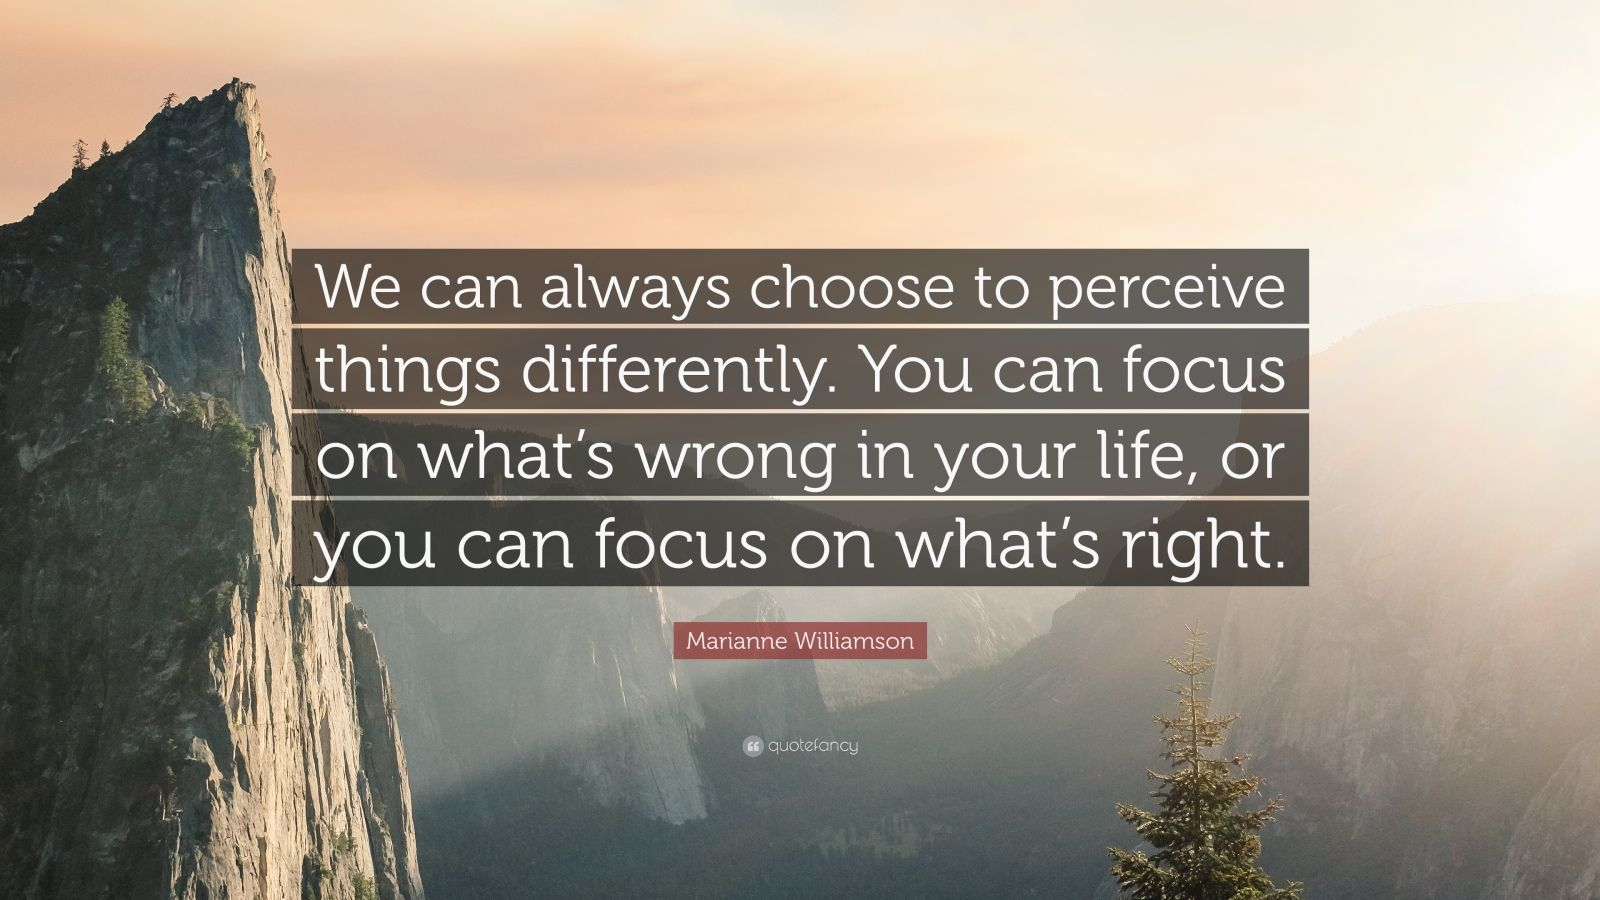 """Marianne Williamson Quote: """"We can always choose to perceive things differently. You can focus on what's wrong in your life, or you can focus on what's right."""""""